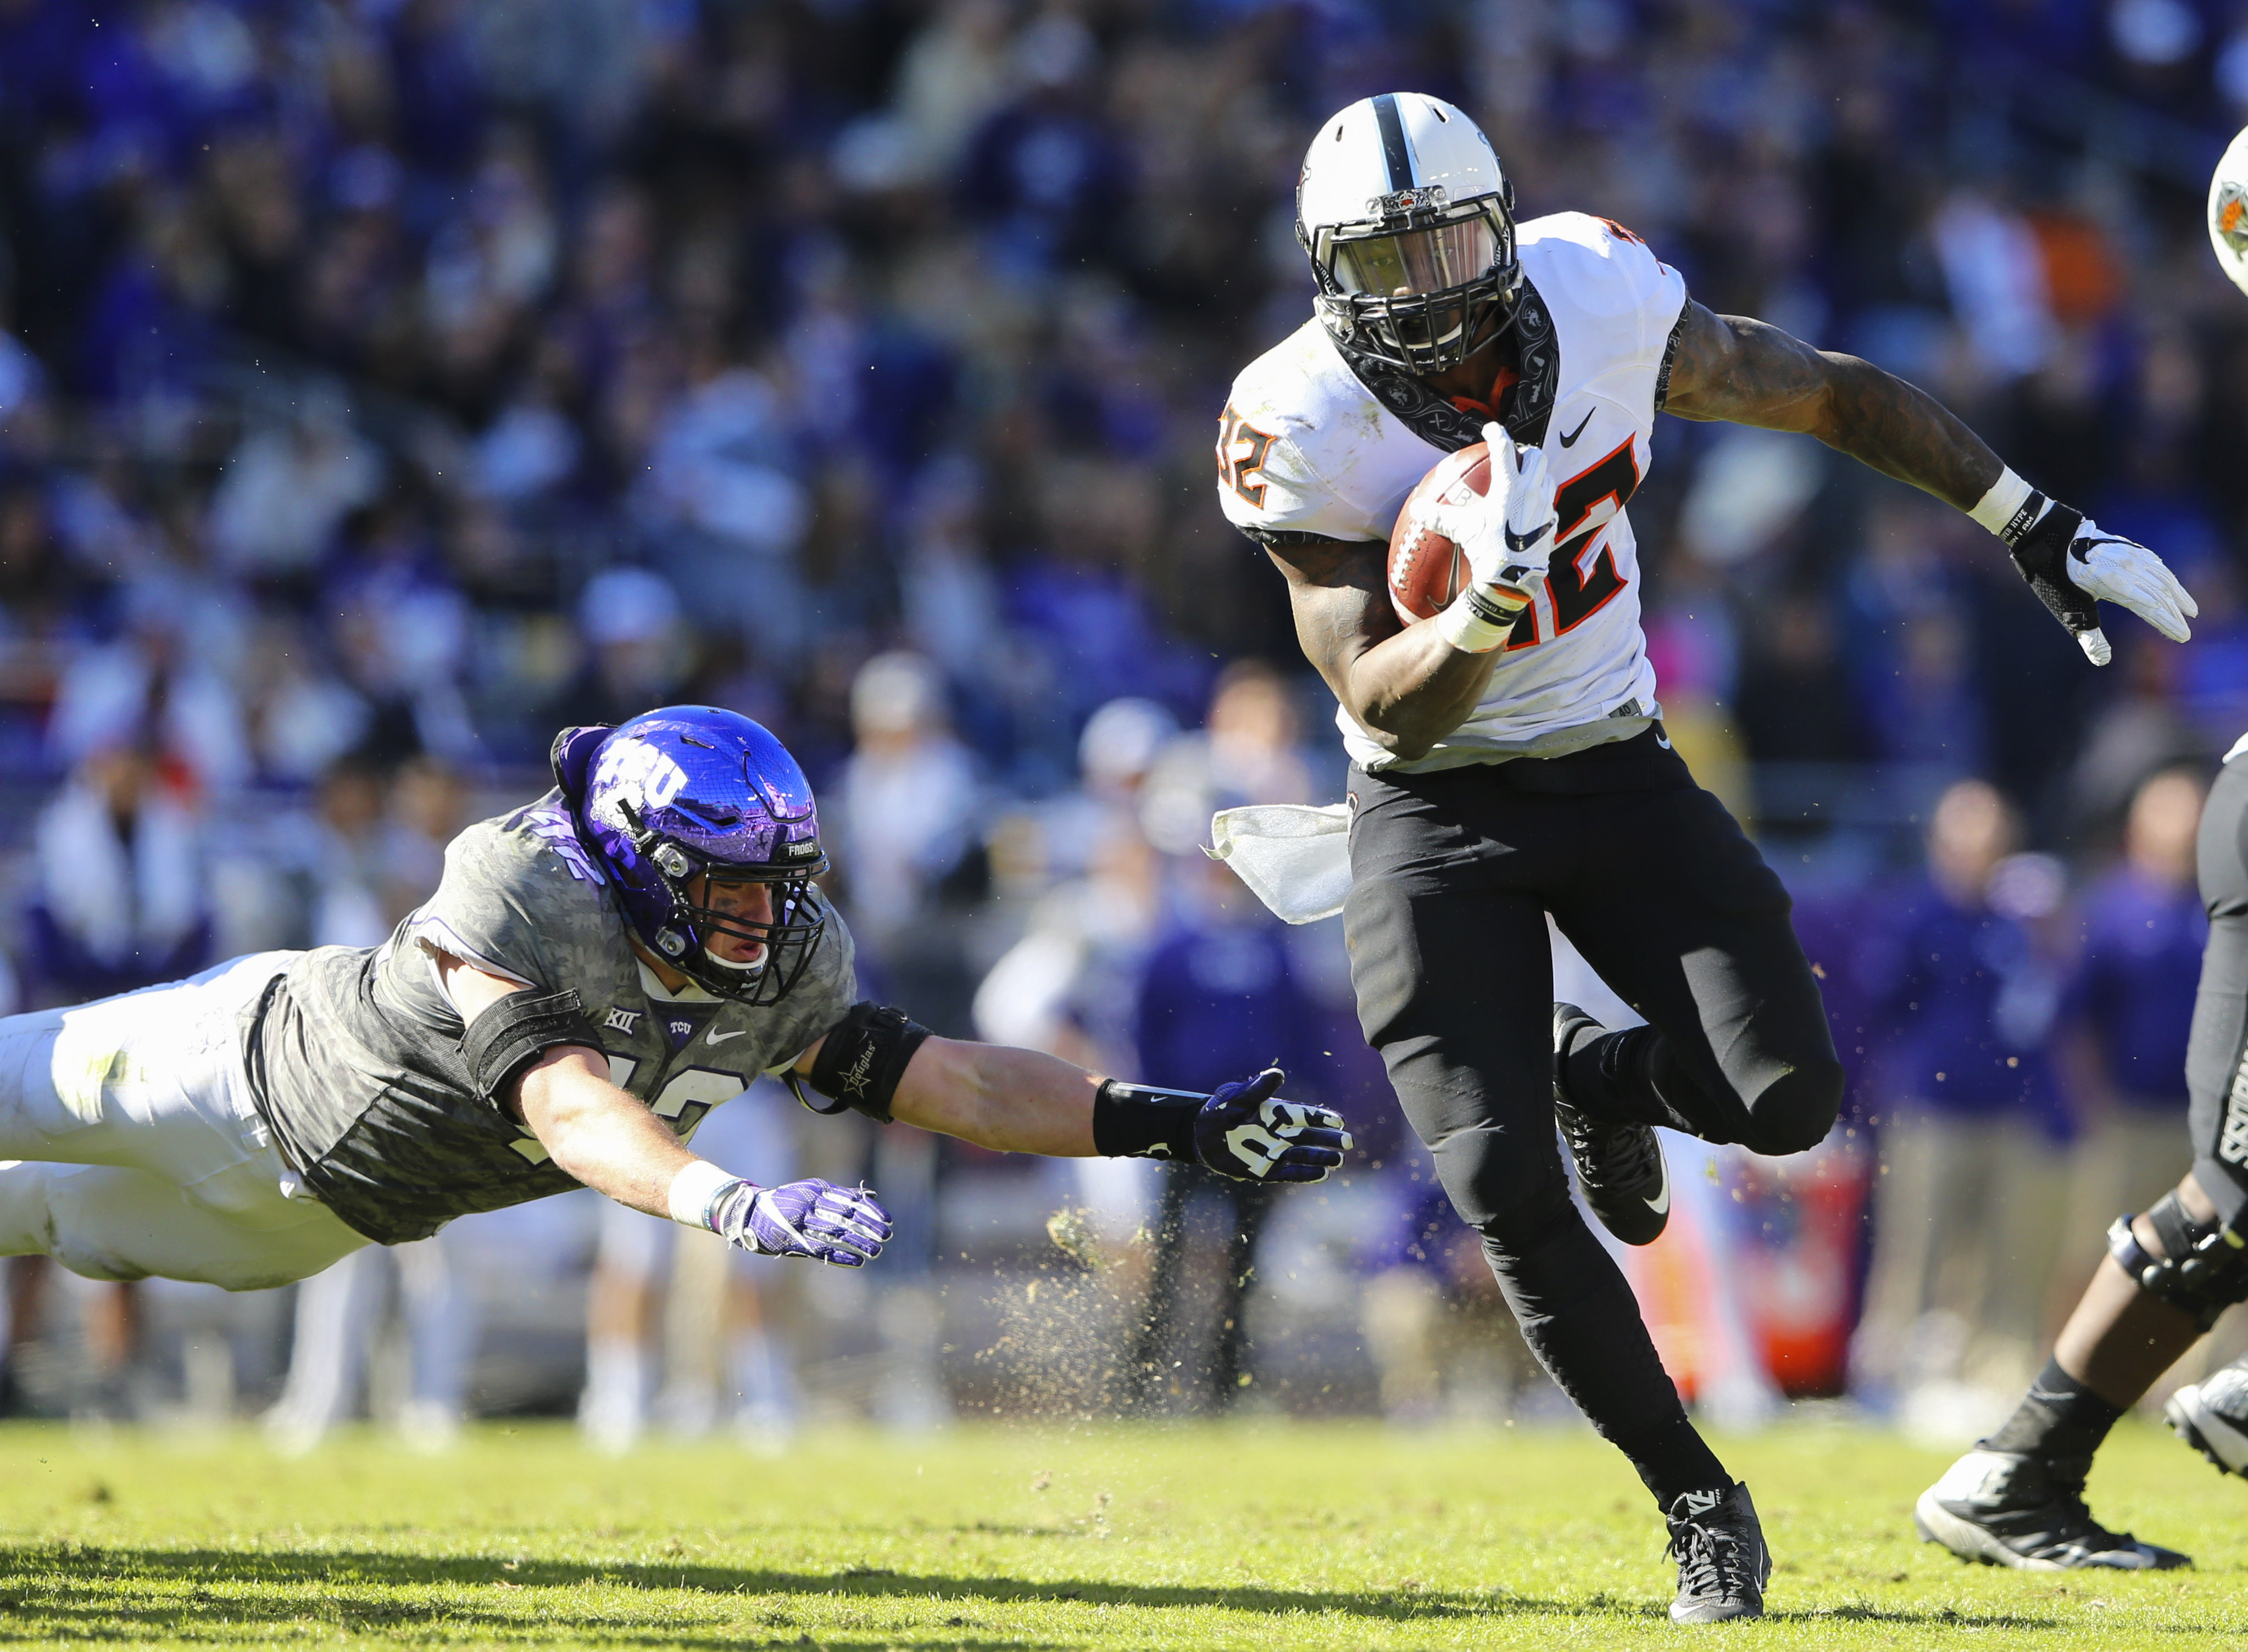 9689035-ncaa-football-oklahoma-state-at-texas-christian